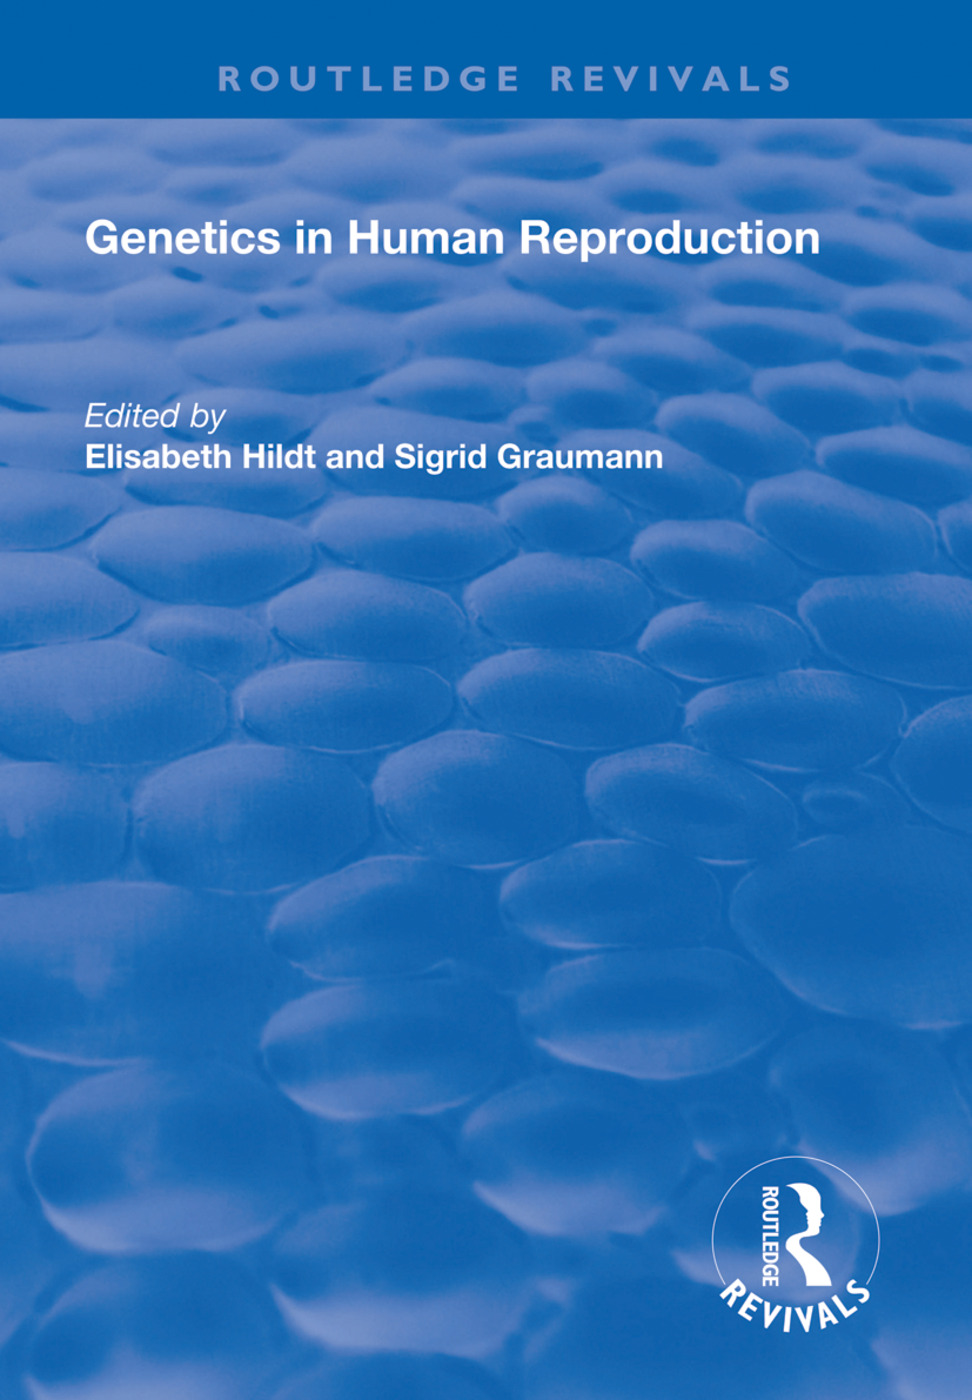 Genetics in Human Reproduction